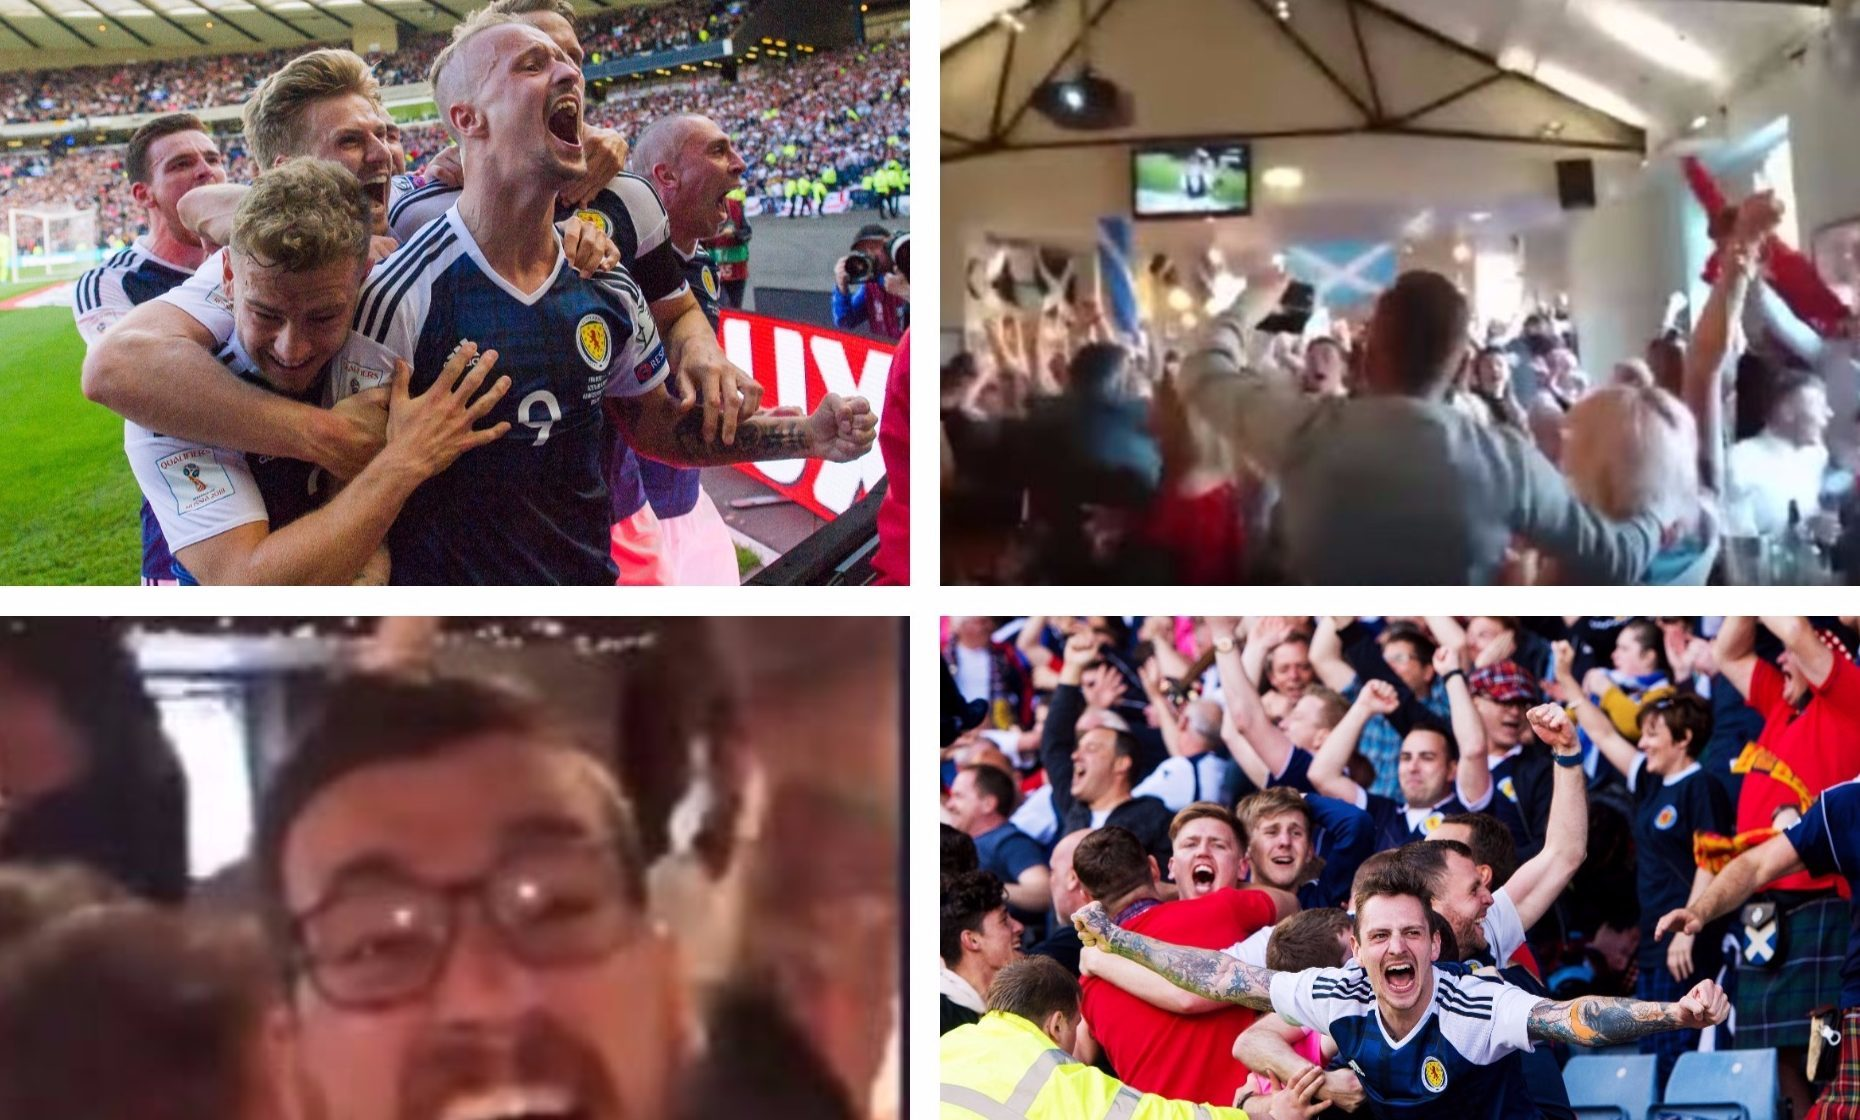 Scotland fans celebrate the Leigh Griffiths goals.